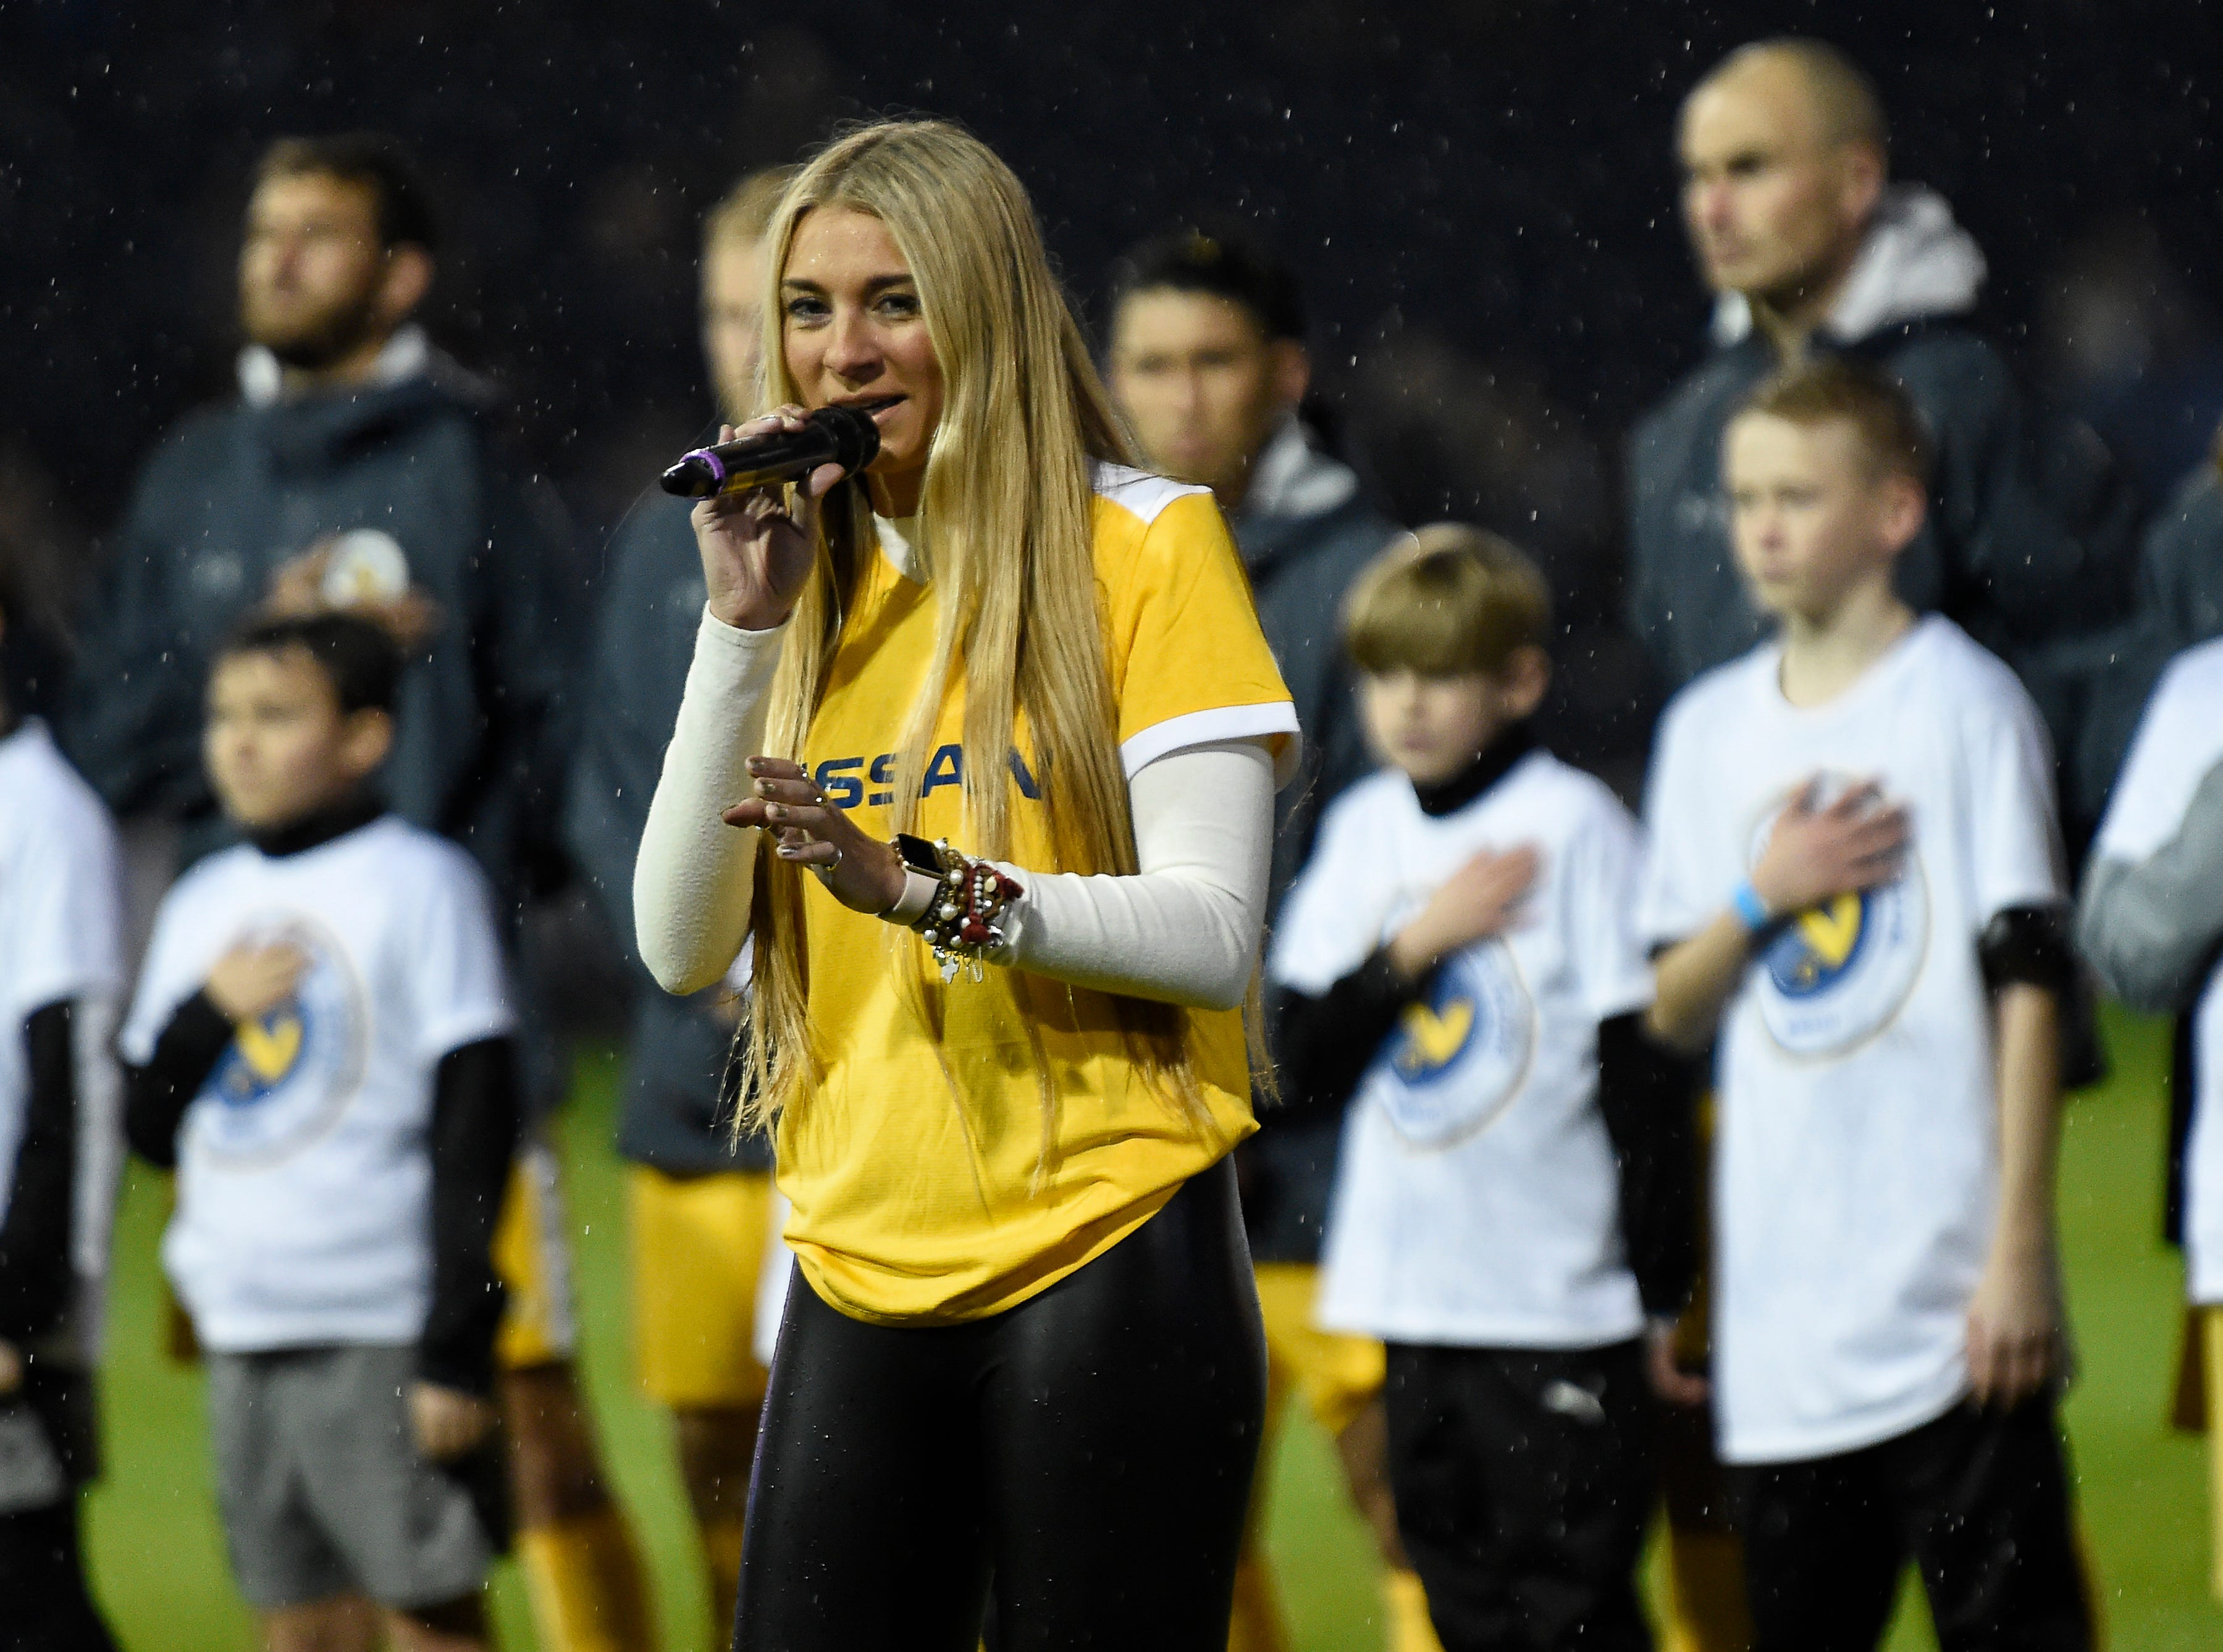 Julia Cole sings the National Anthem before the preseason game between Nashville SC and New York City FC at First Tennessee Park on Friday, Feb. 22, 2019 in Nashville, Tenn.